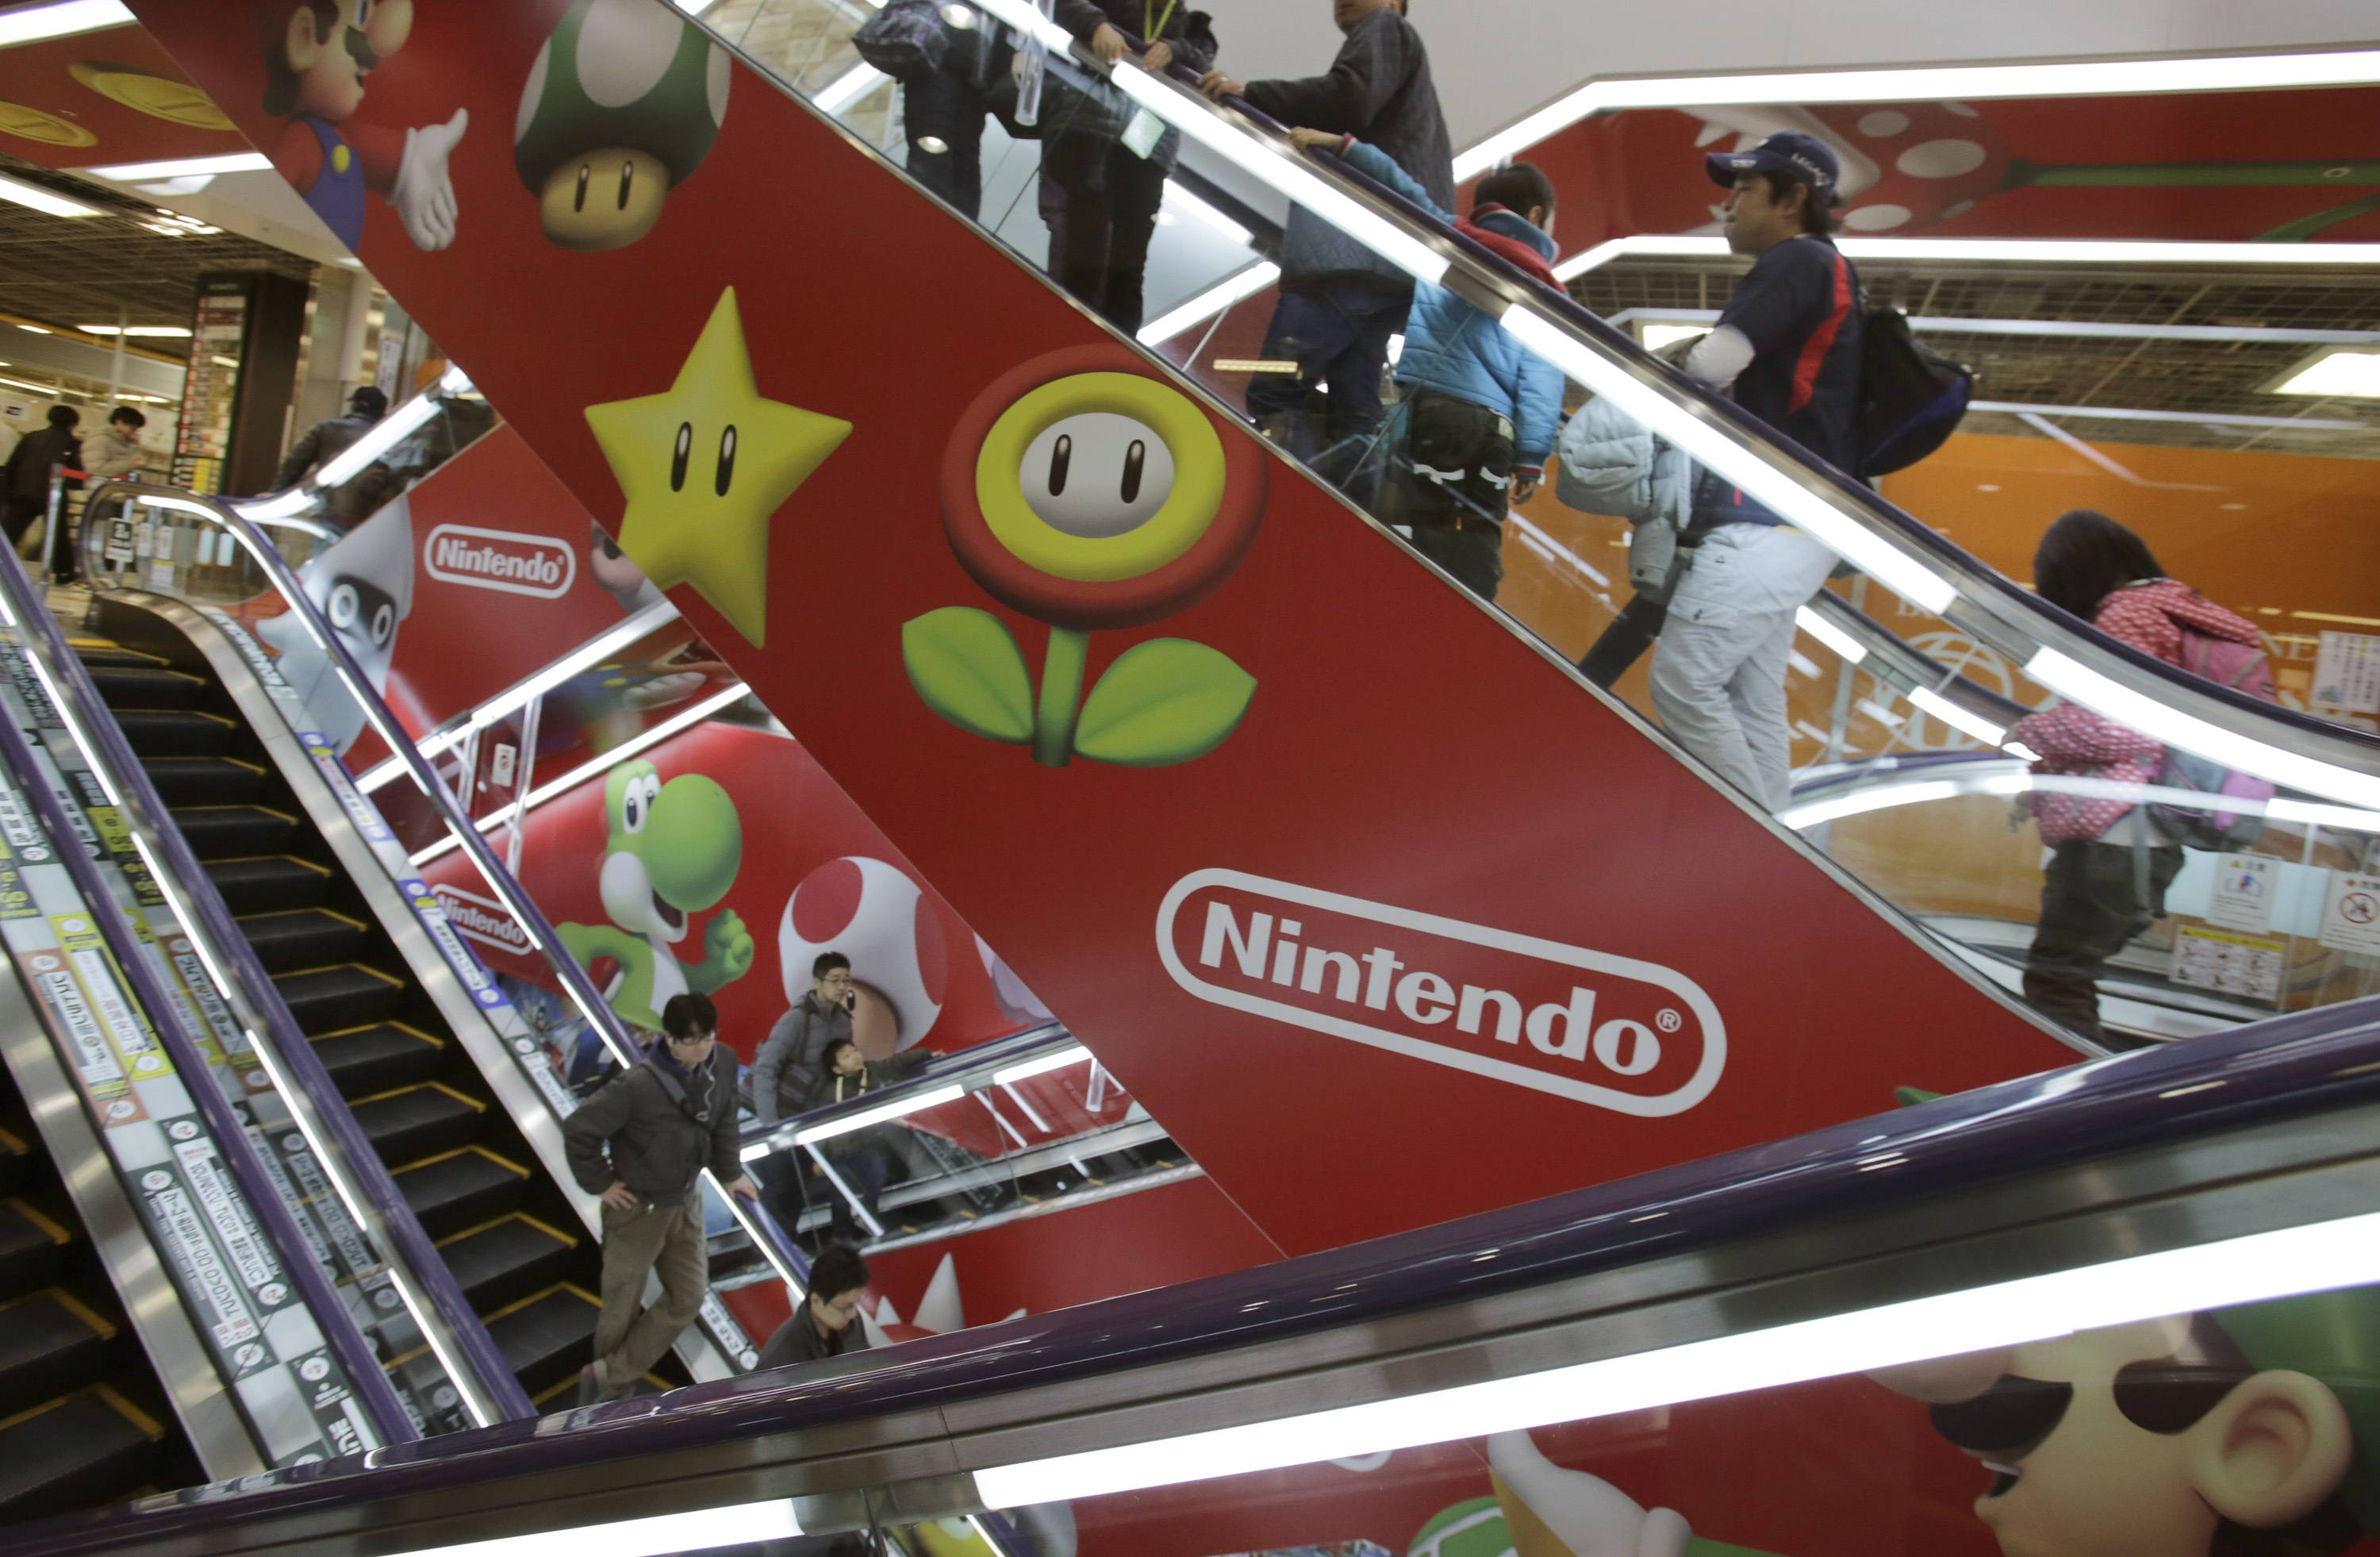 Bloomberg NewsShoppers take escalators painted with the logos of Nintendo and Super Mario characters at an electronics store in Tokyo. Nintendo Co. sank to a worse-than-expected loss for the fiscal first quarter on lagging Wii U and 3DS video-game machine sales.